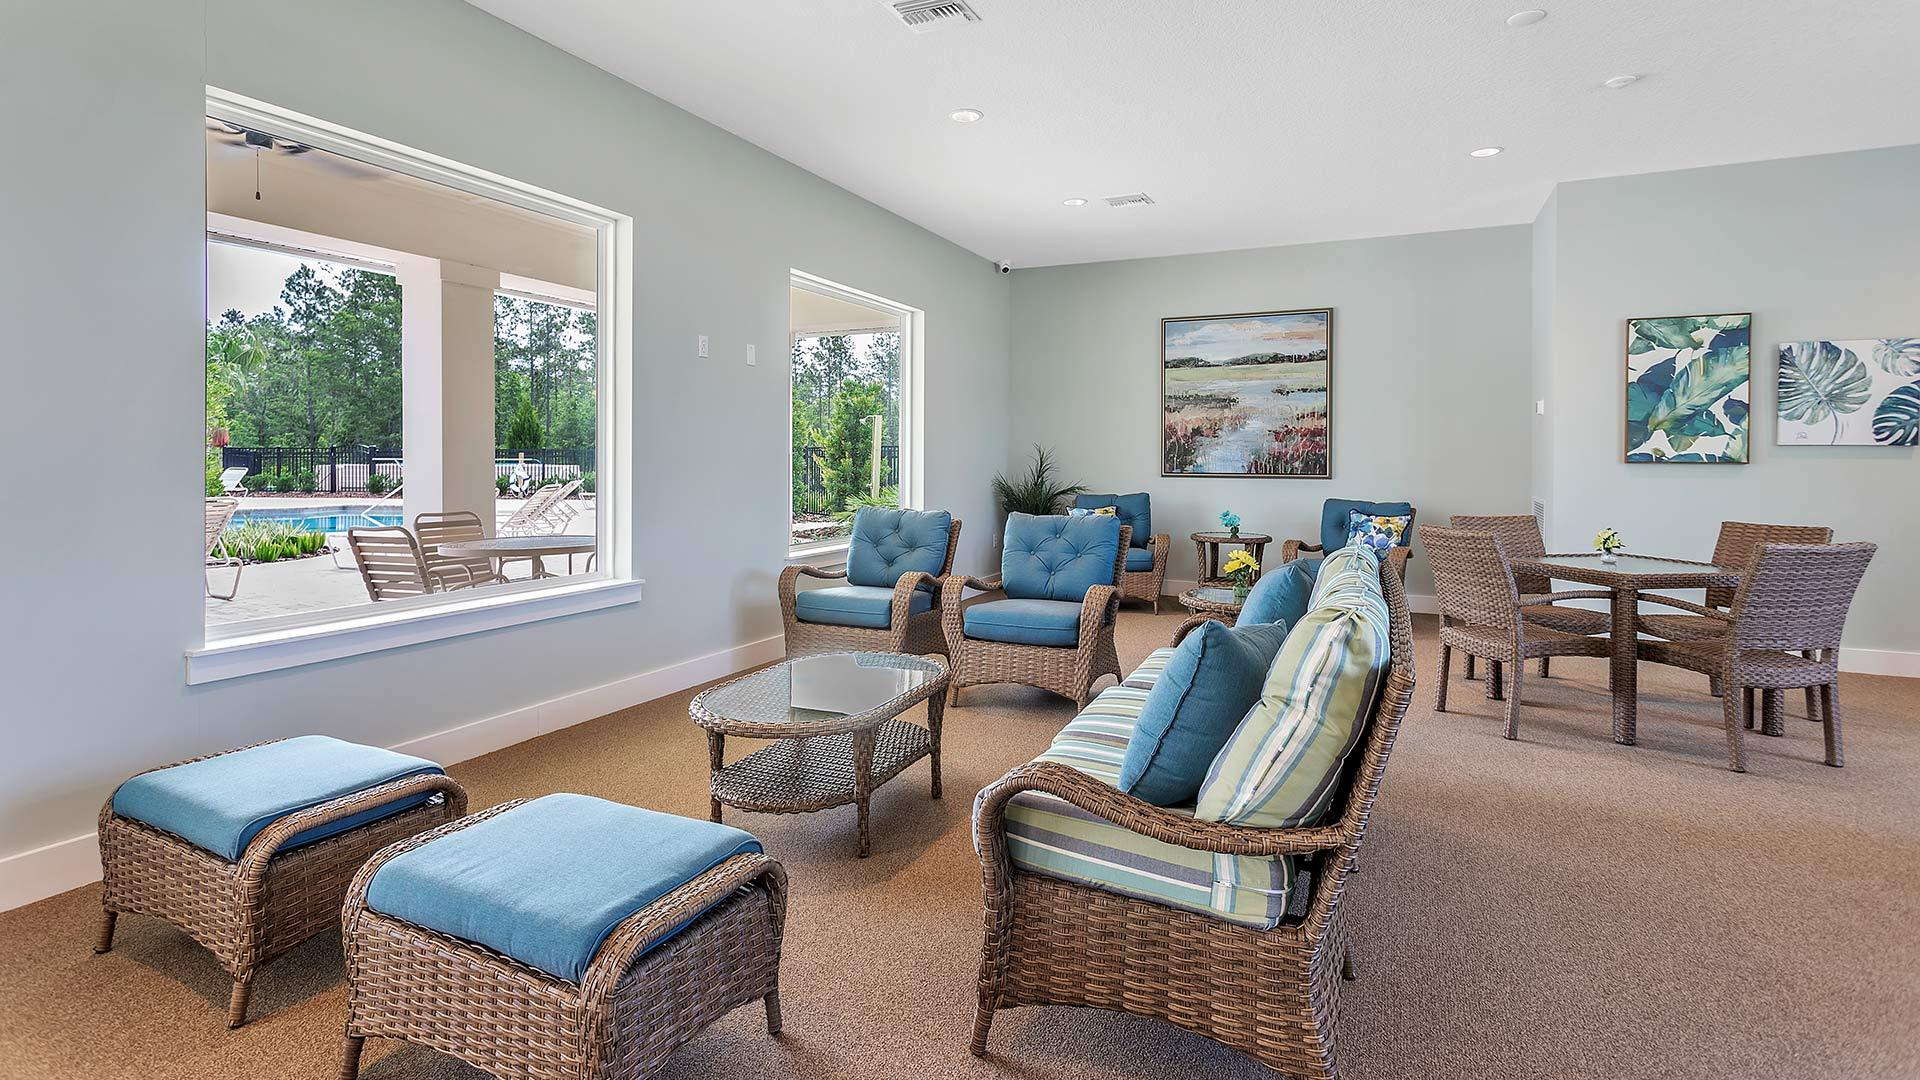 Living Area featured in the SIESTA KEY By D.R. Horton in Jacksonville-St. Augustine, FL